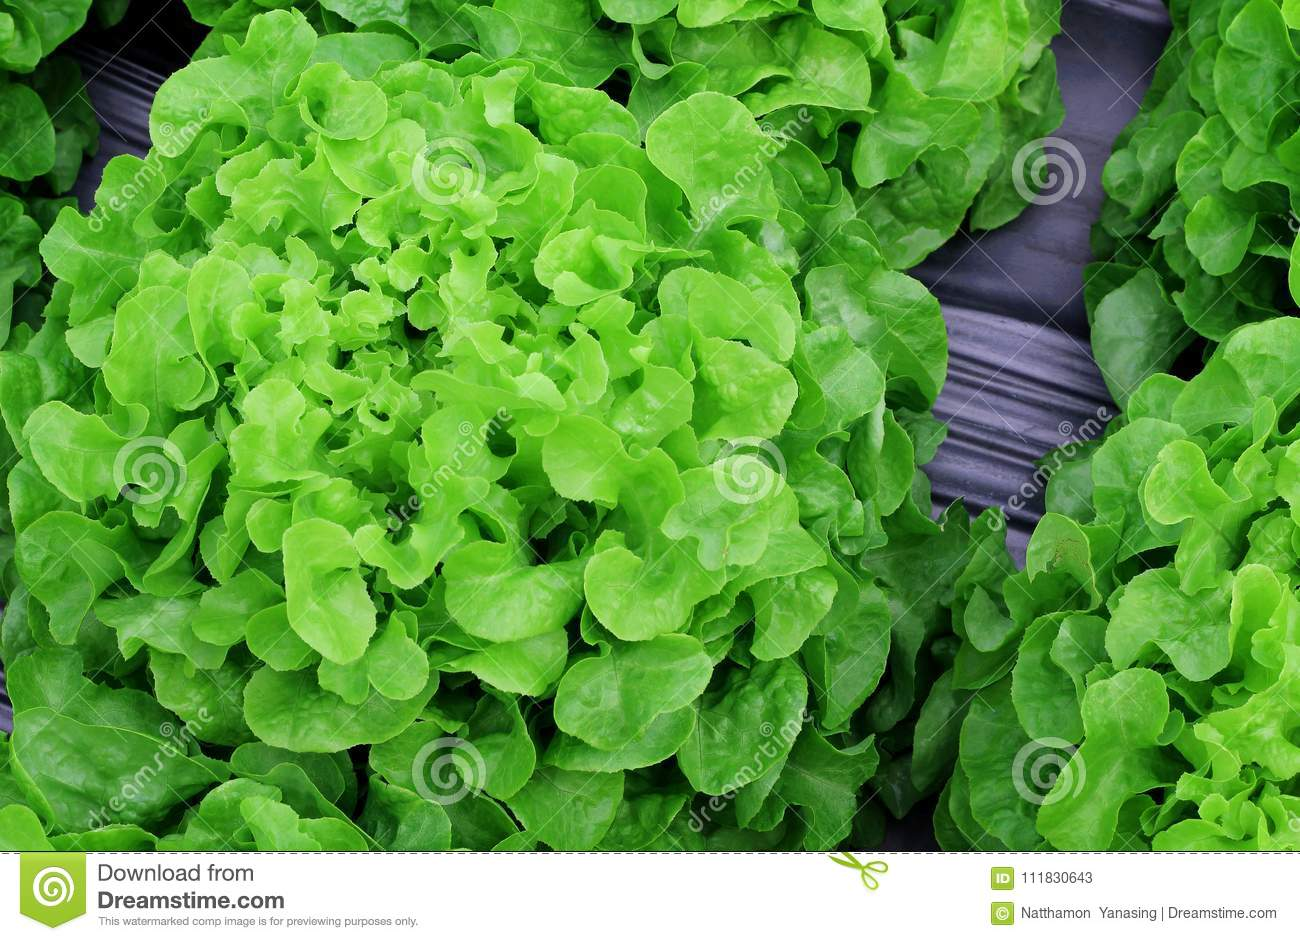 Fresh lettuce leaves vegetables for salad, hydroponic vegetable plant.